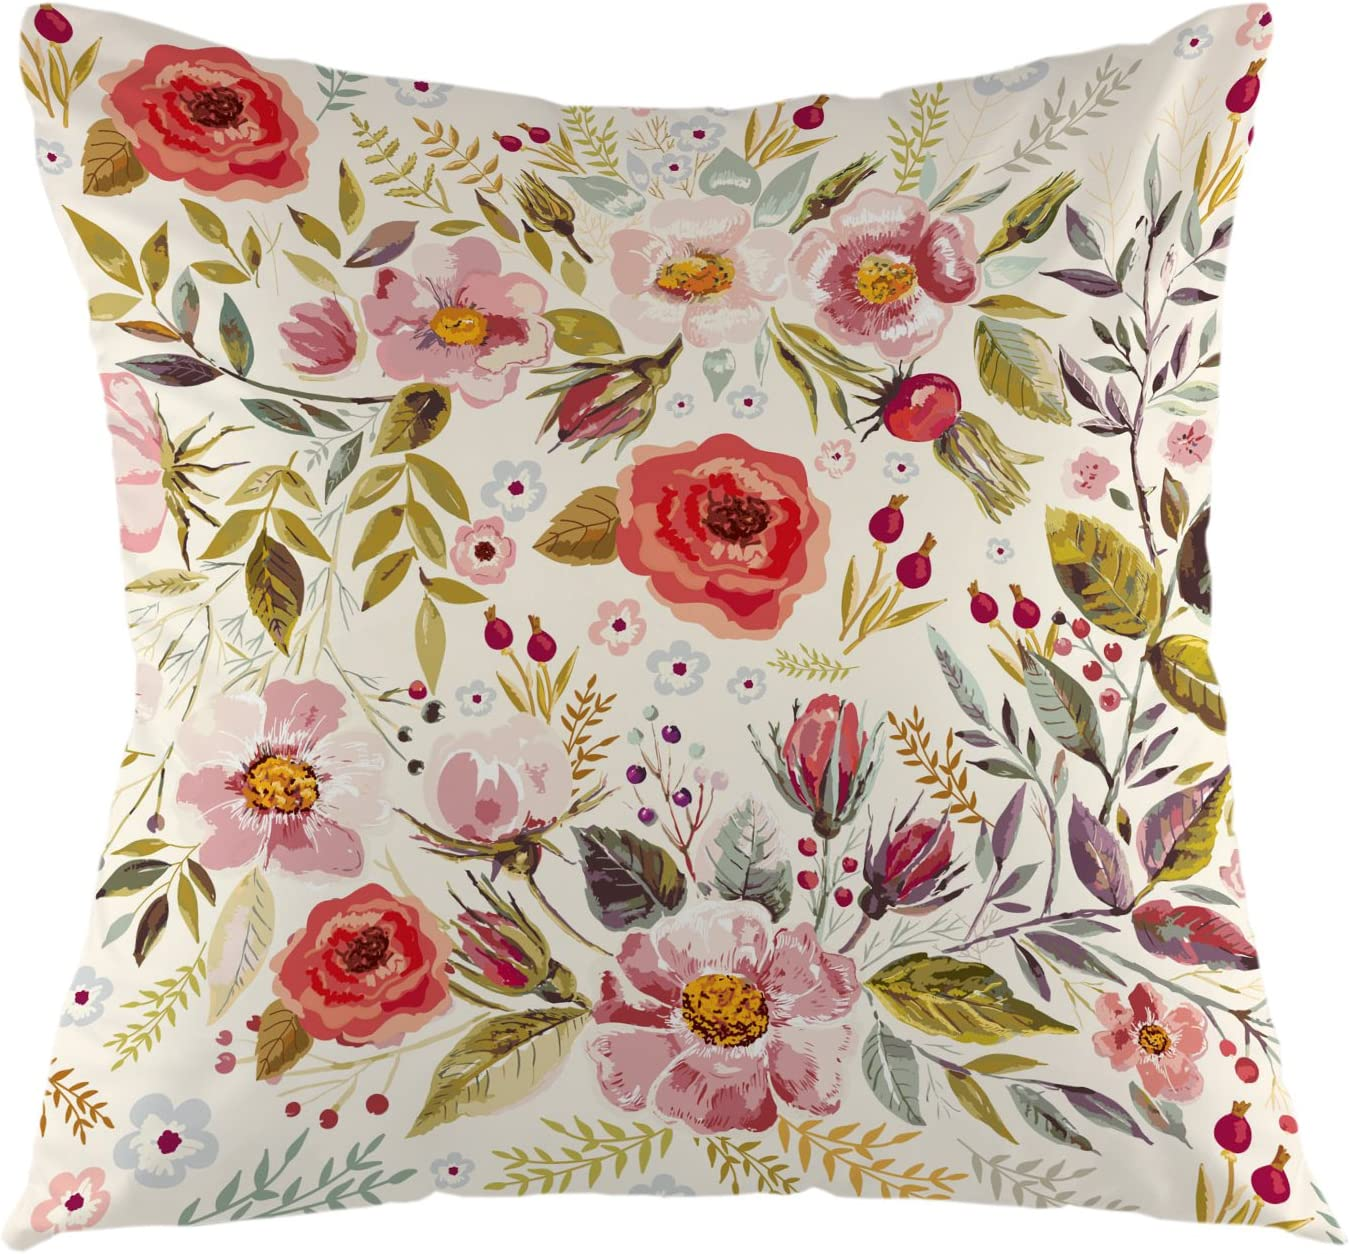 Amazon Com Ofloral Flower Decorative Throw Pillow Cover Luxurious Peony Flower Pillow Case Square Cushion Cover For Sofa Couch Home Car Bedroom Living Room 18 X 18 Yellow Red Home Kitchen